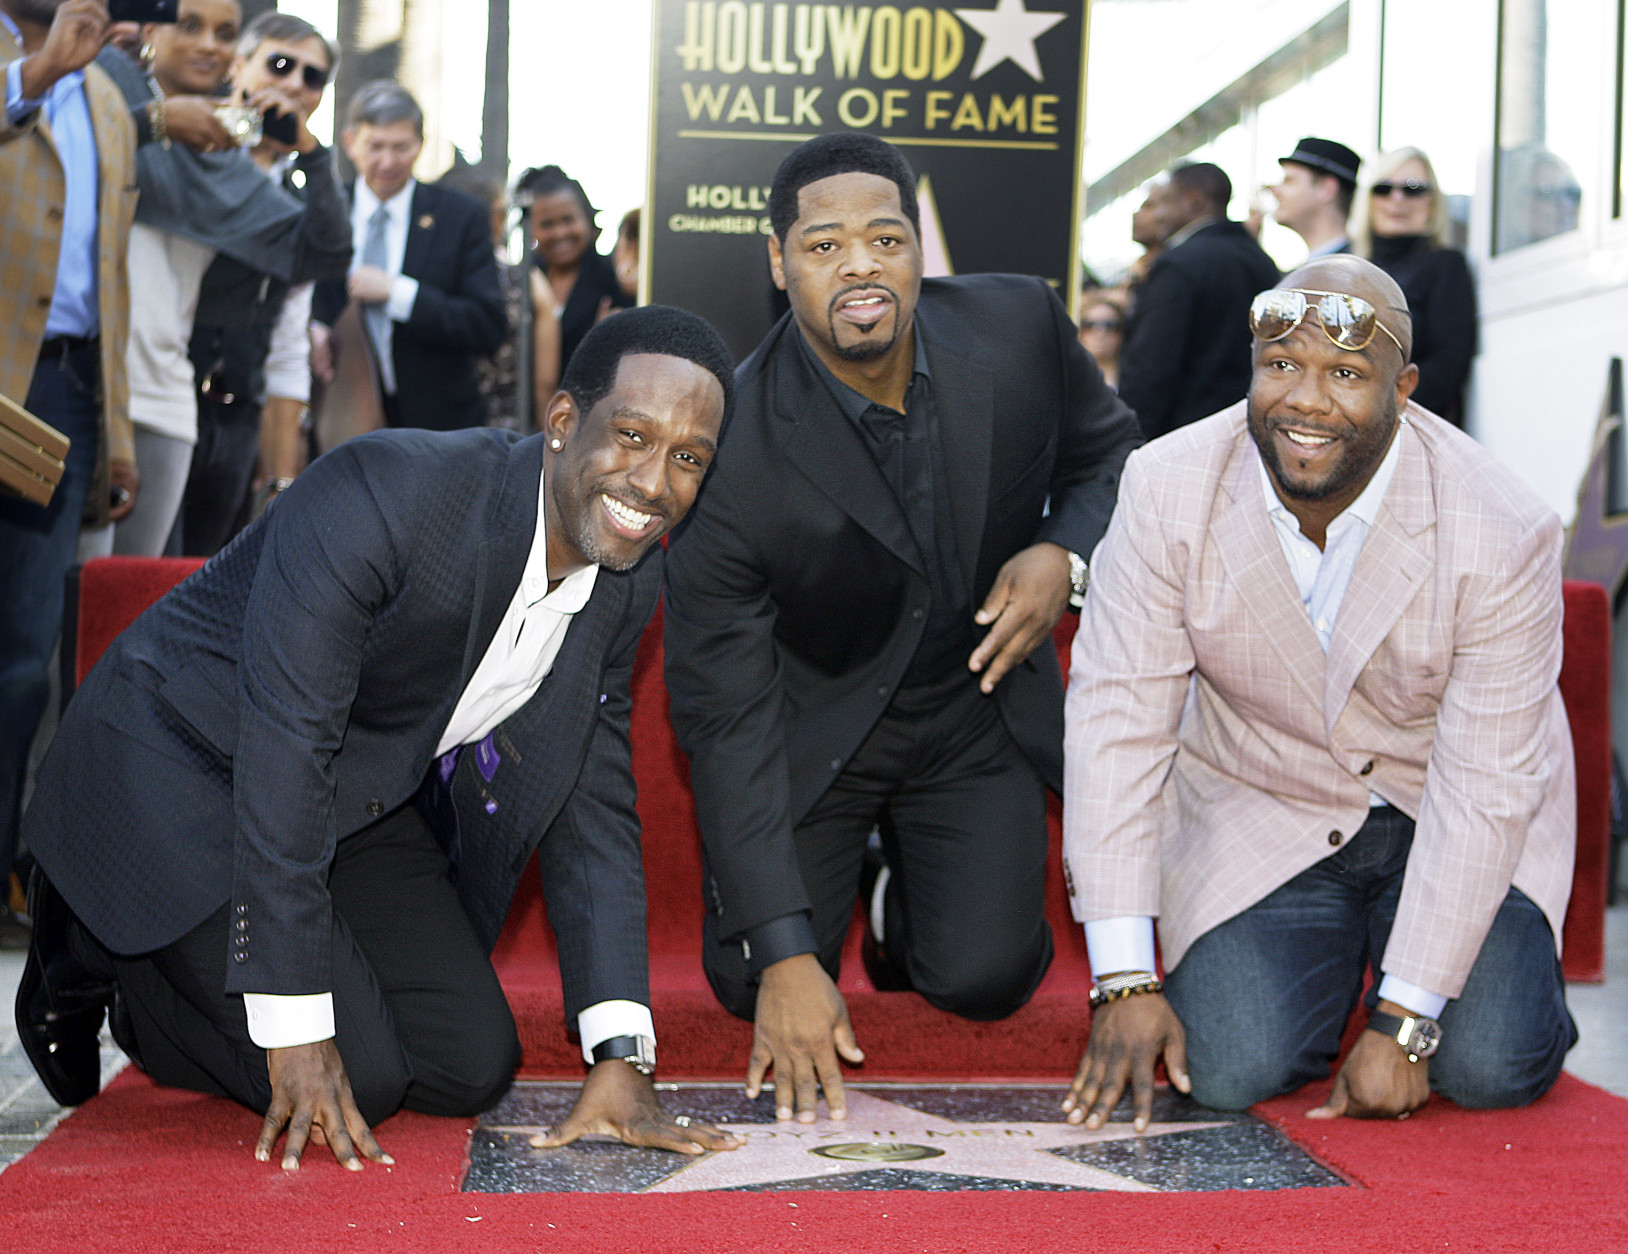 The R&B group Boyz II Men, from left, Shawn Stockman, Nathan Morris and Wanya Morris, touch their new star on the Hollywood Walk of Fame at dedication ceremonies in Los Angeles on Thursday, Jan. 5, 2012. (AP Photo/Reed Saxon)